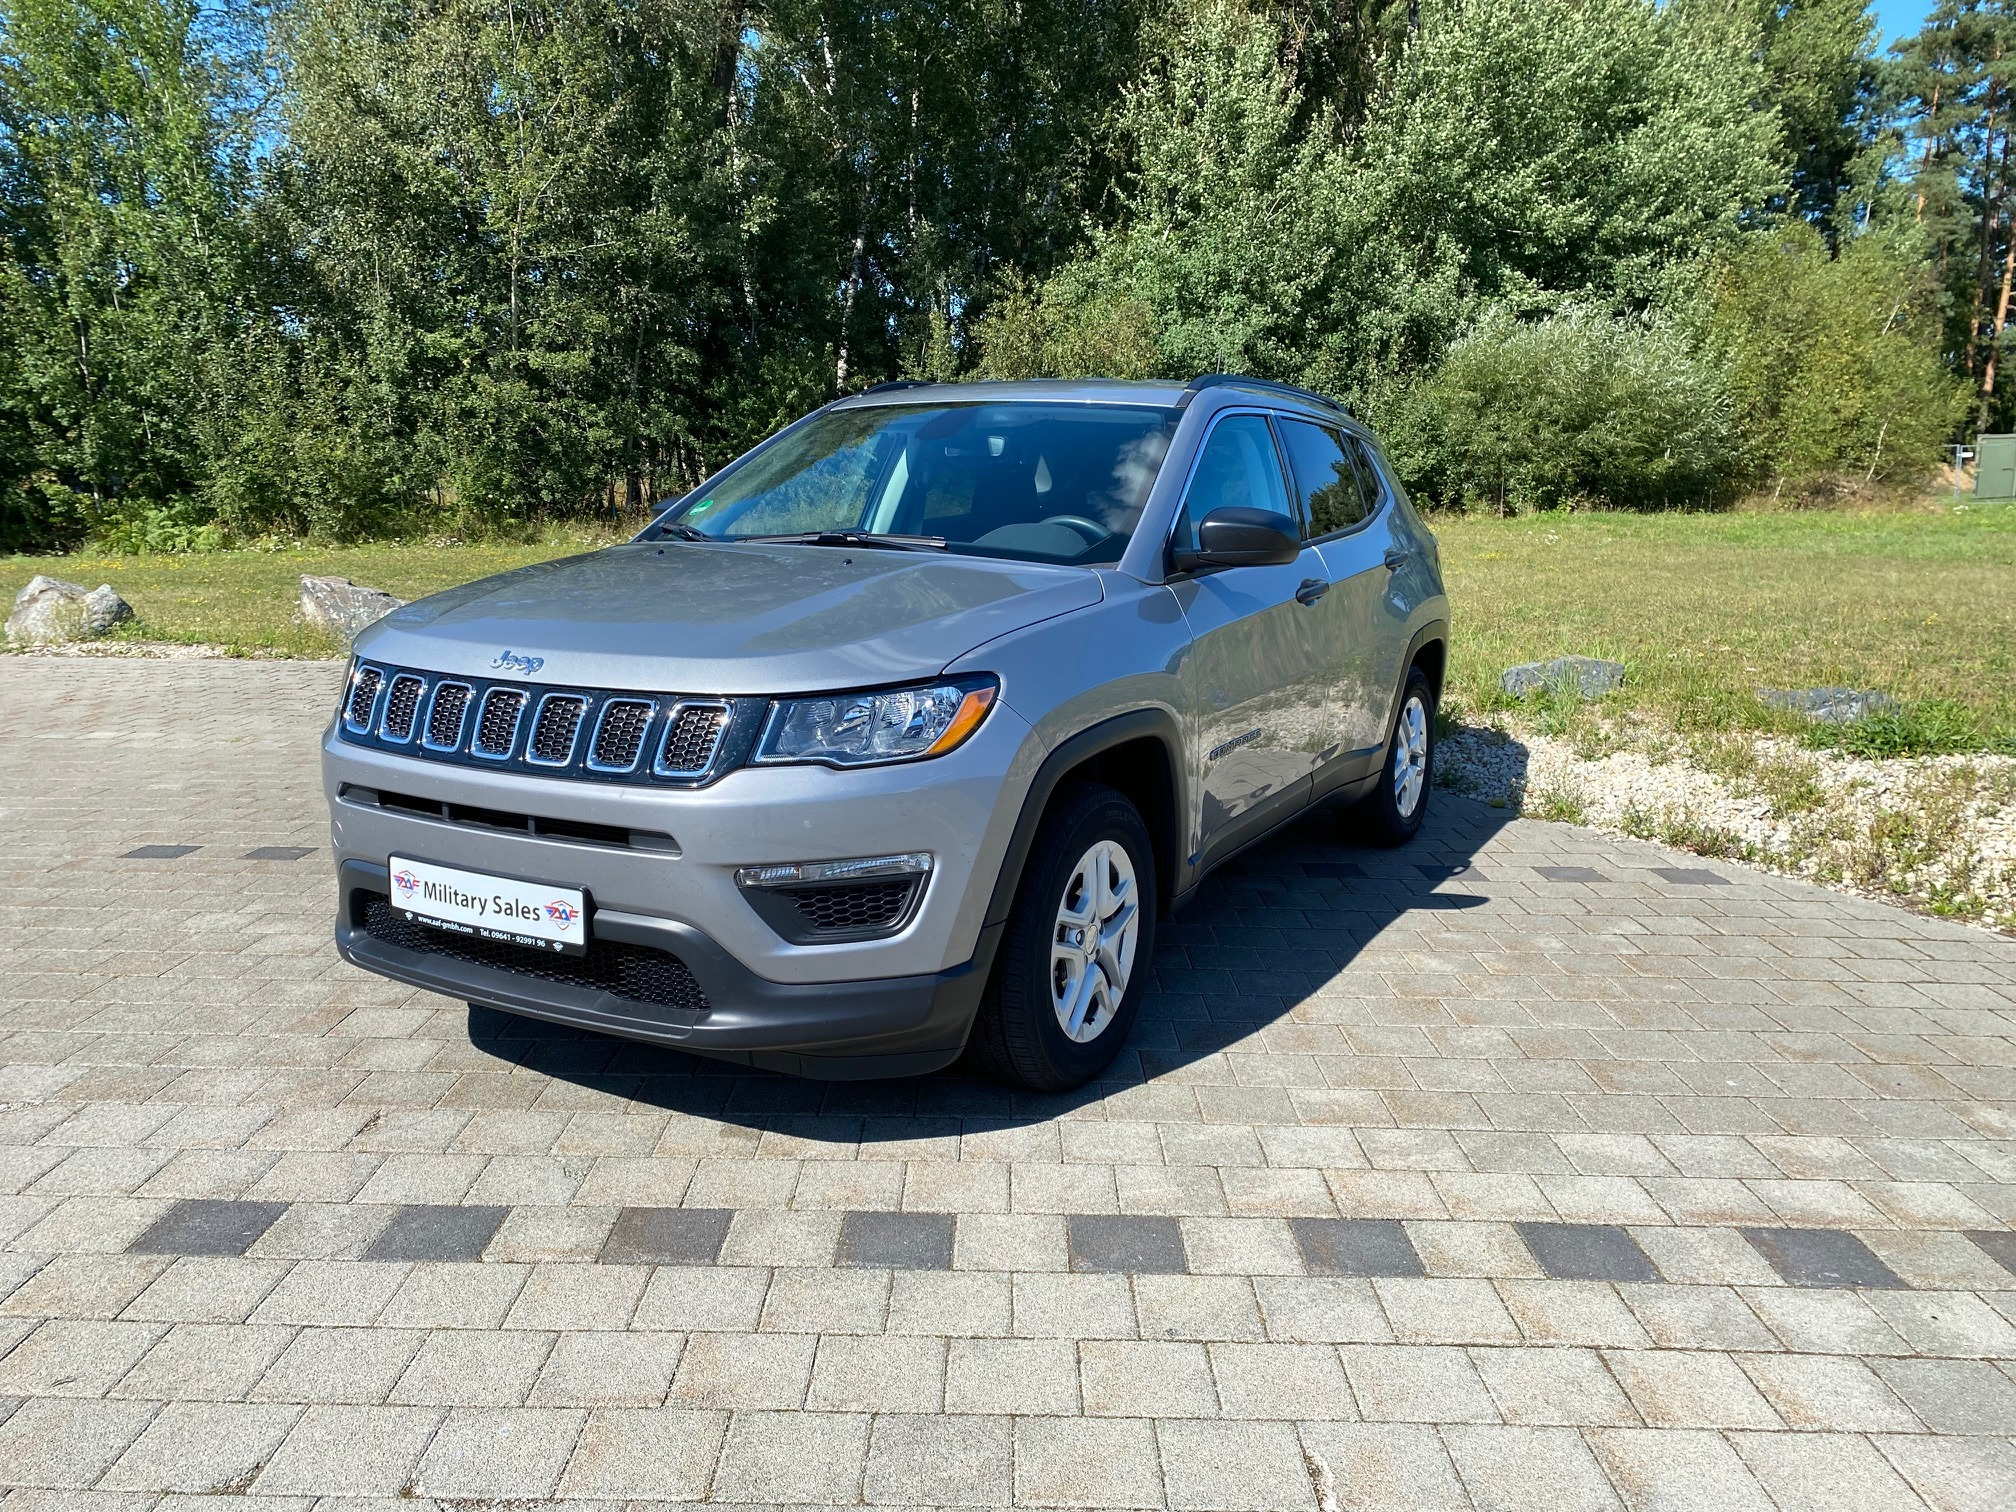 2019 Jeep Compass Sport</br>as low as </br>$179 per paycheck